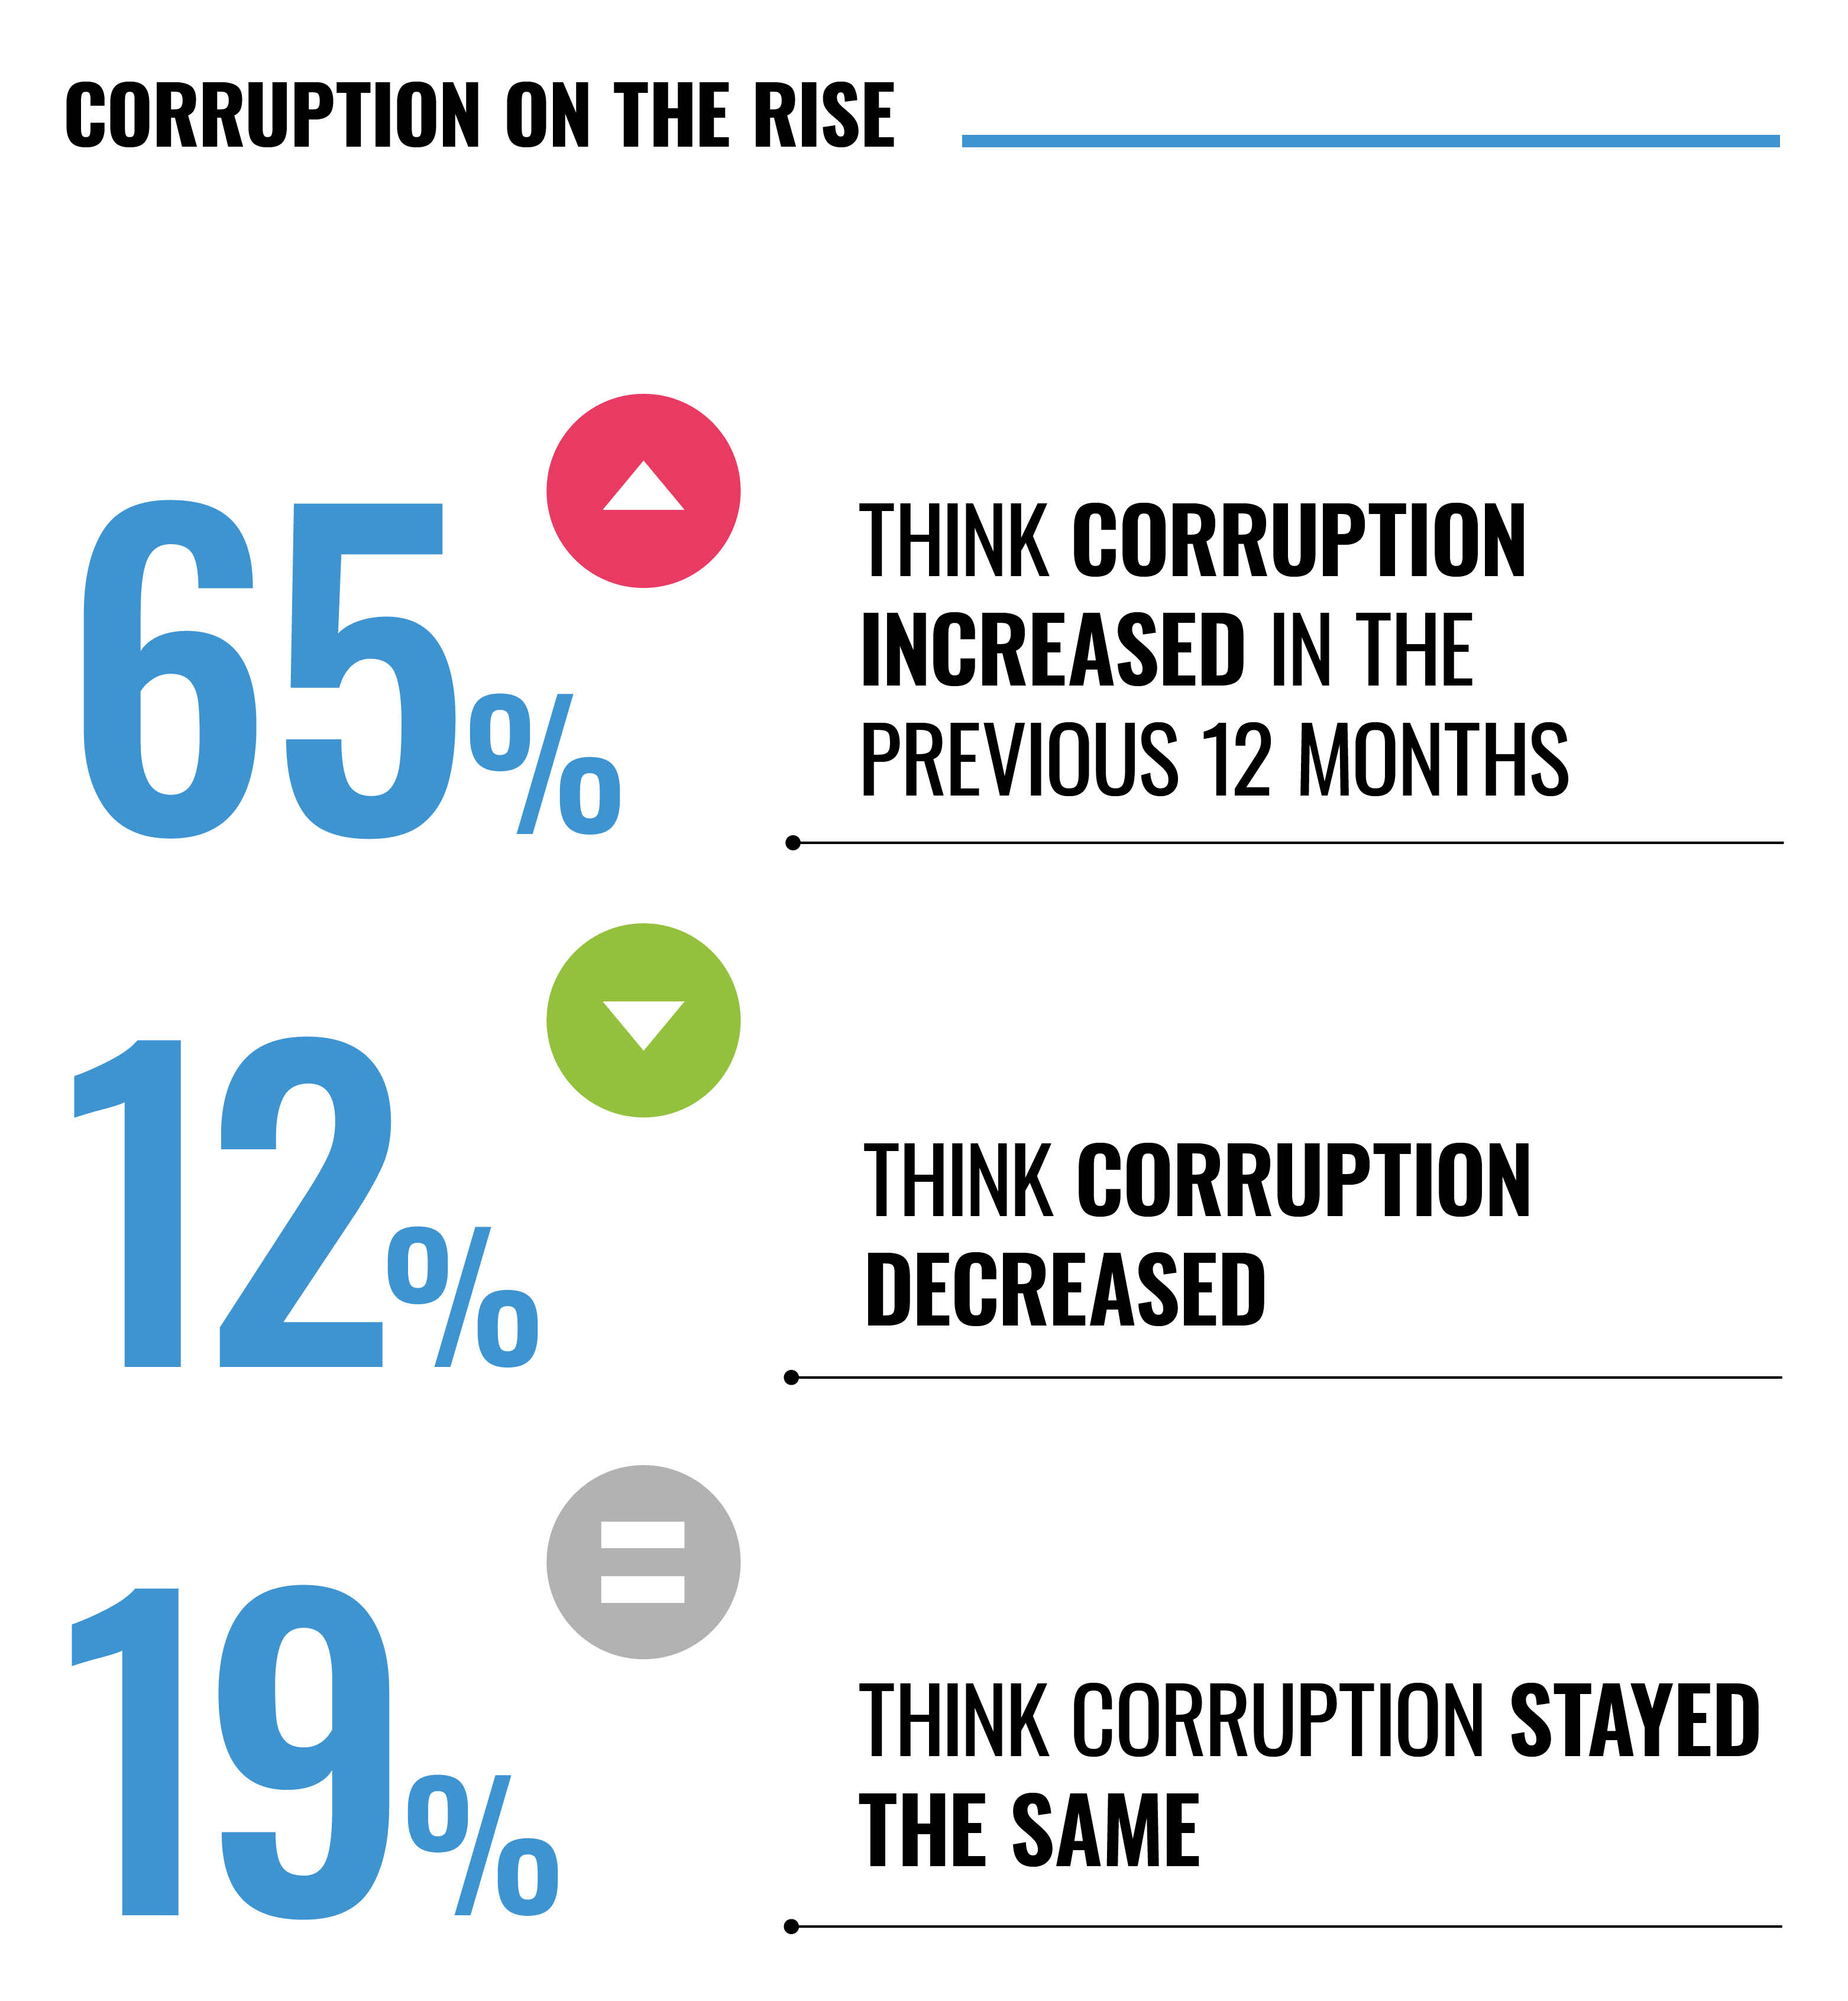 Corruption on the rise infographic